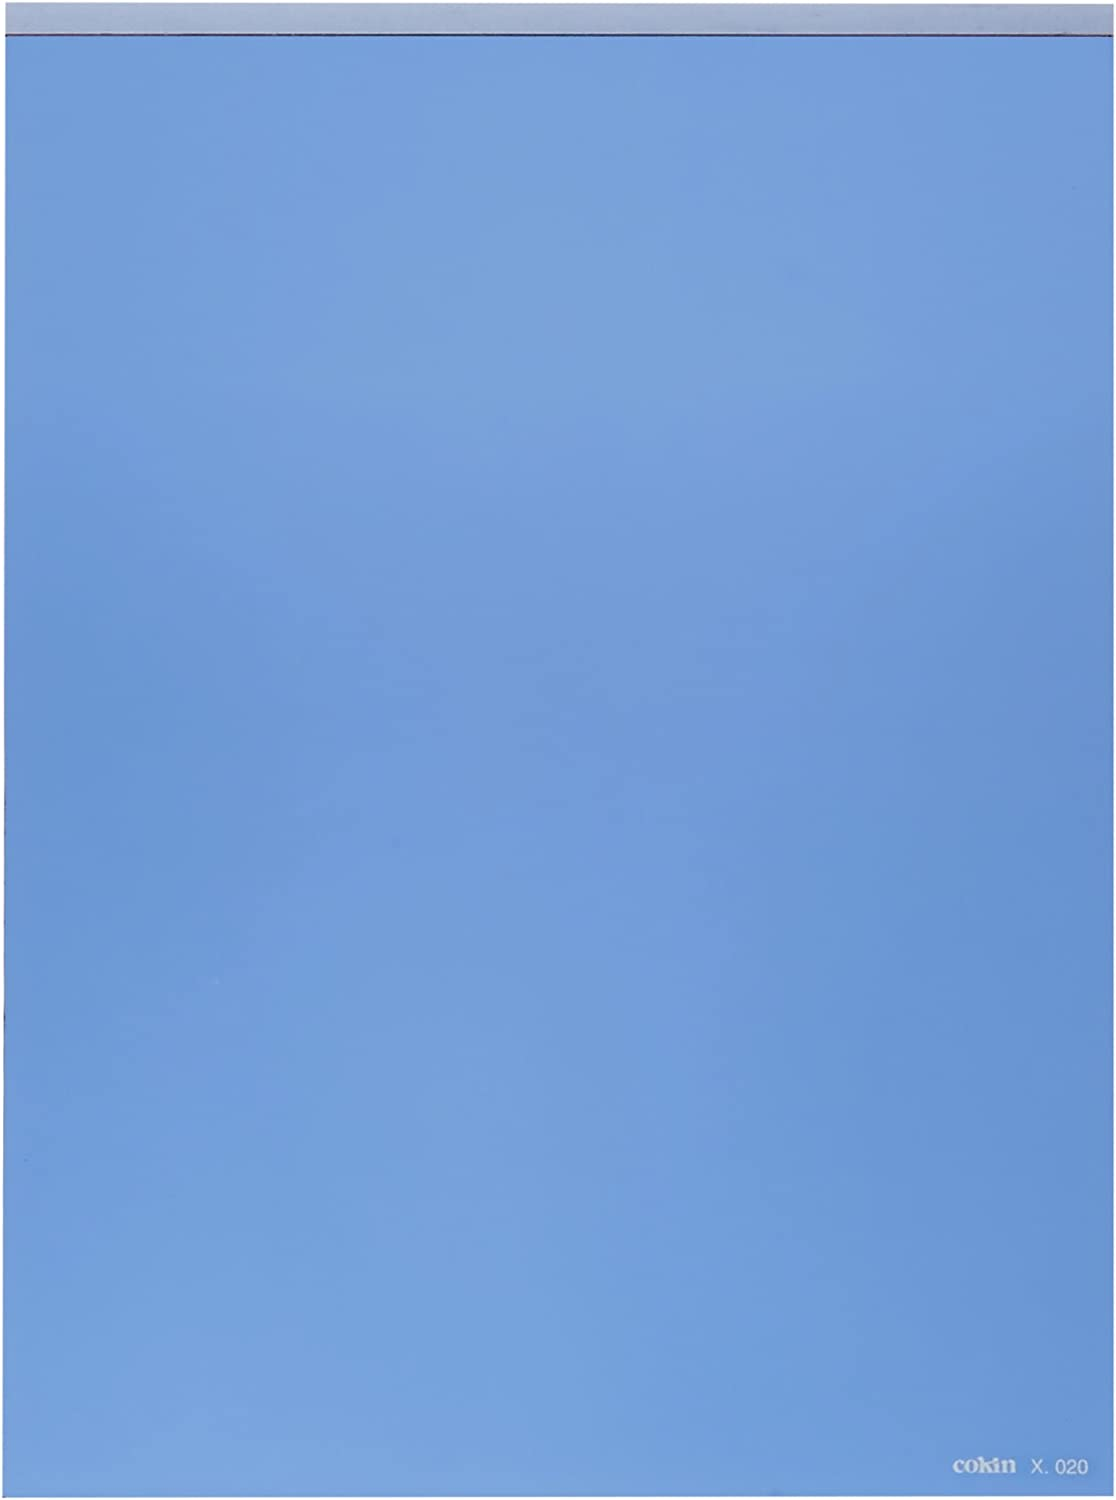 X020 X Cokin Square Blue 80A Series Holder 130mm X 130mm - 2//3-Stop for XL